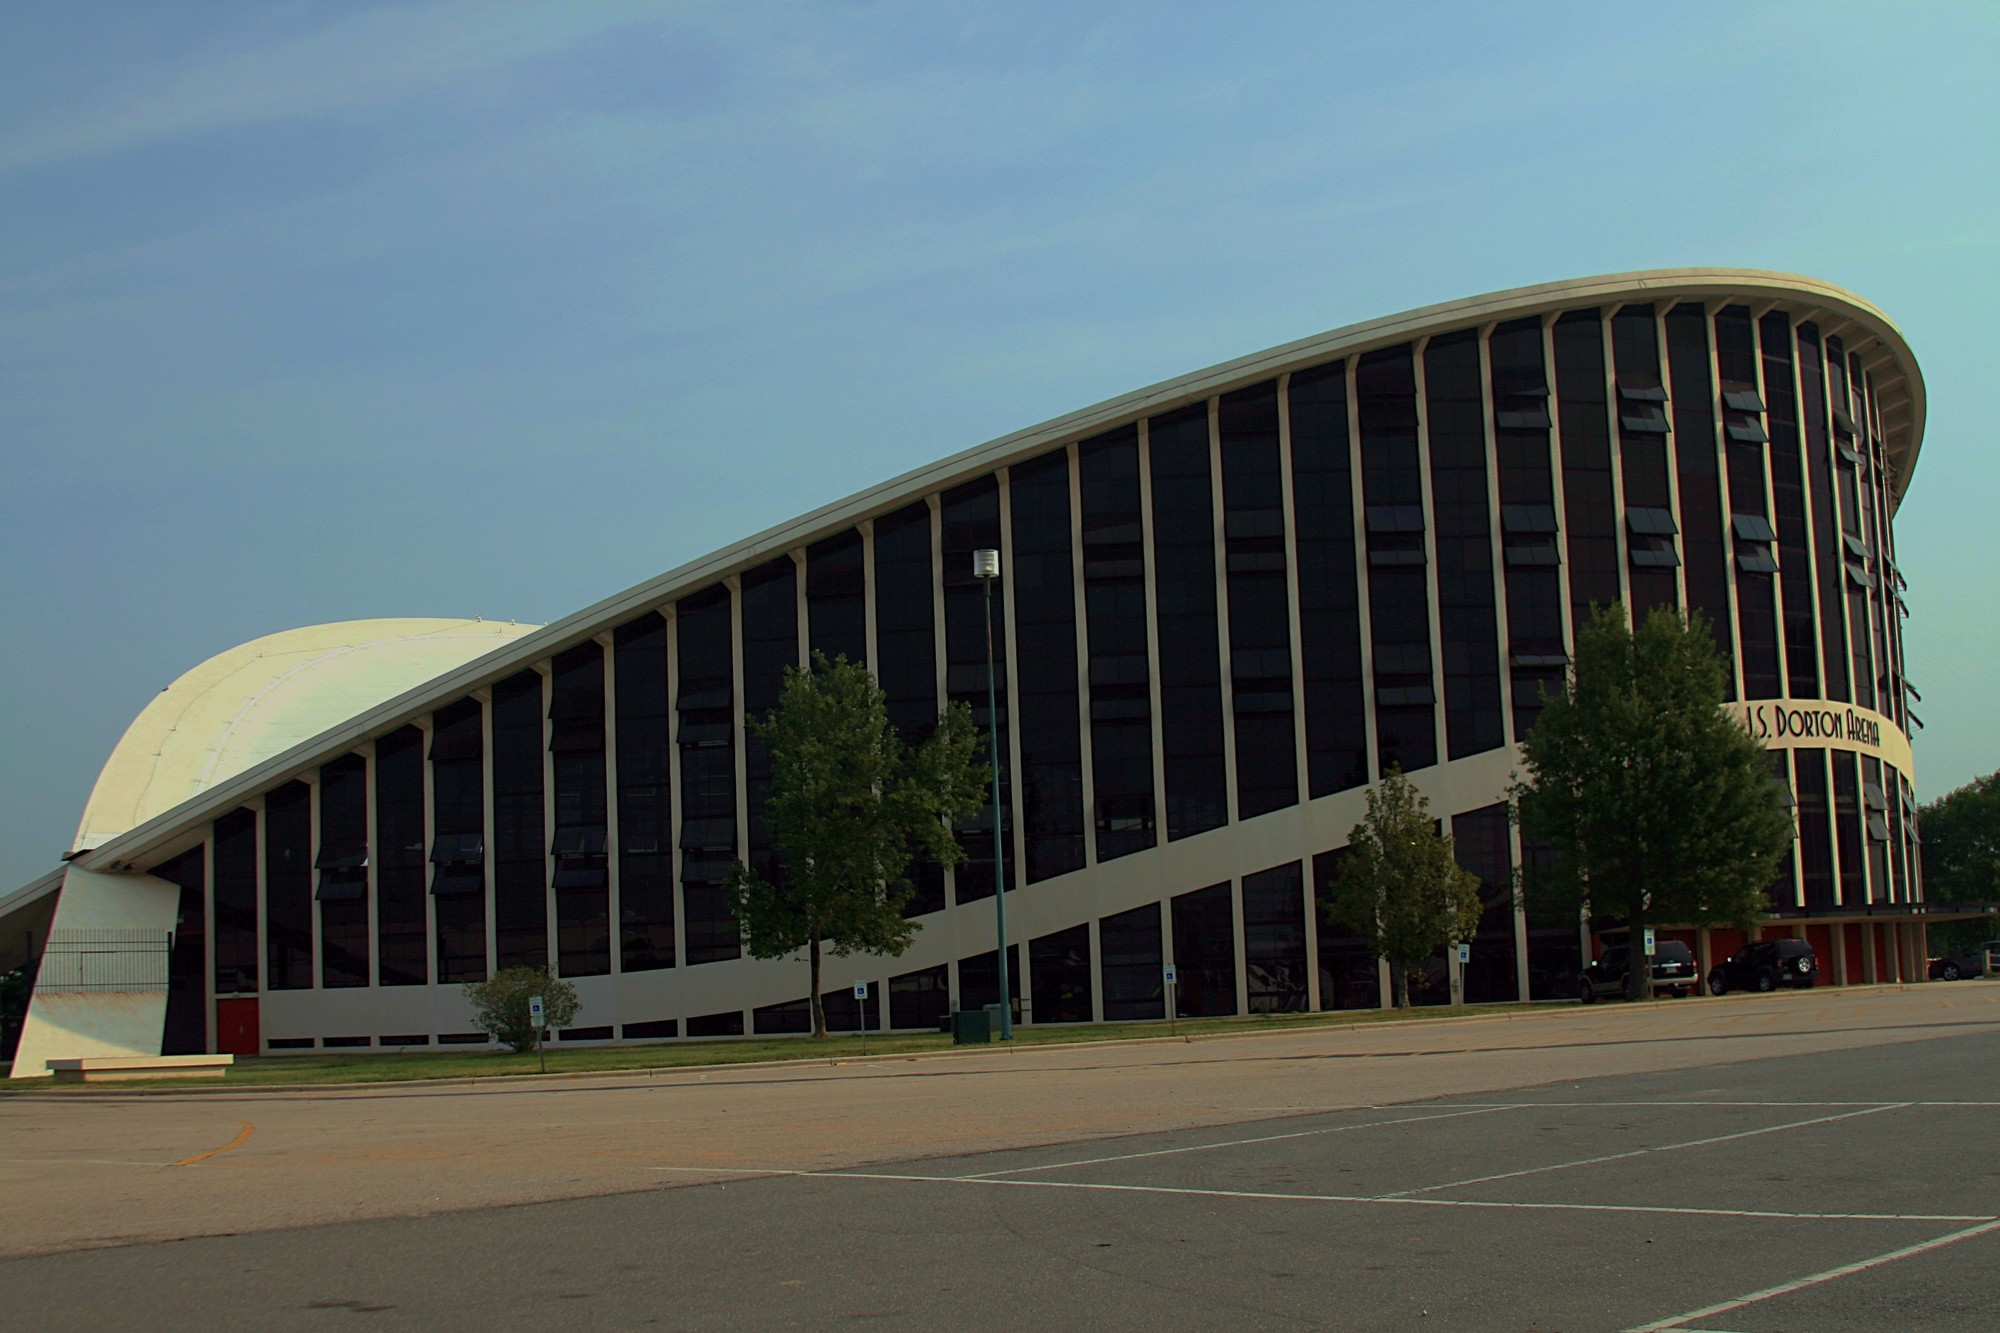 Video: JS Dorton Arena, the Fairground Pavilion That Was a Modernist Marvel, © Flickr CC User Wendy